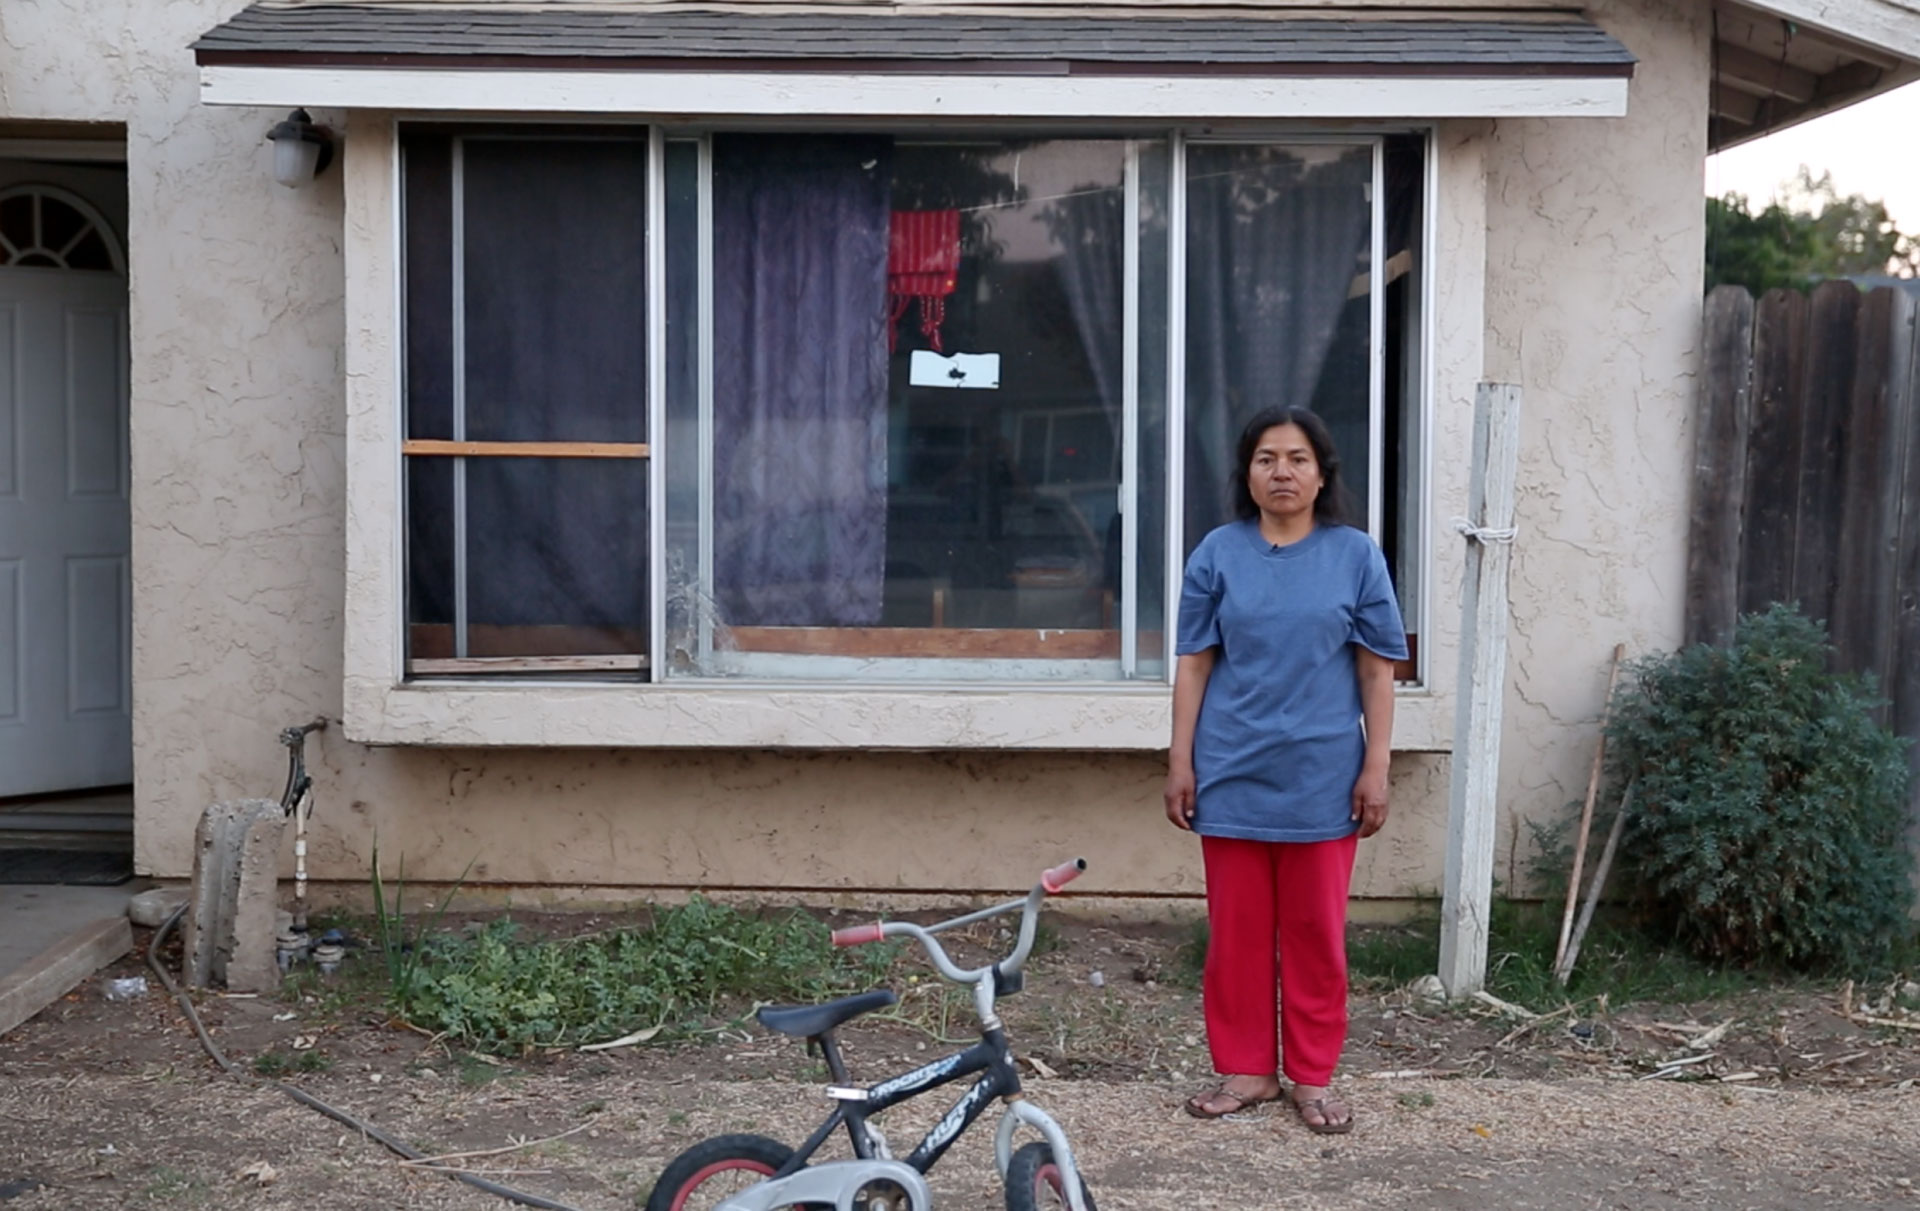 When Angelina Diaz-Ramirez, an immigrant farmworker from Mexico, suffered a heart attack, no one at the hospital could explain what was happening to her. She speaks Triqui, an indigenous language in southern Mexico.